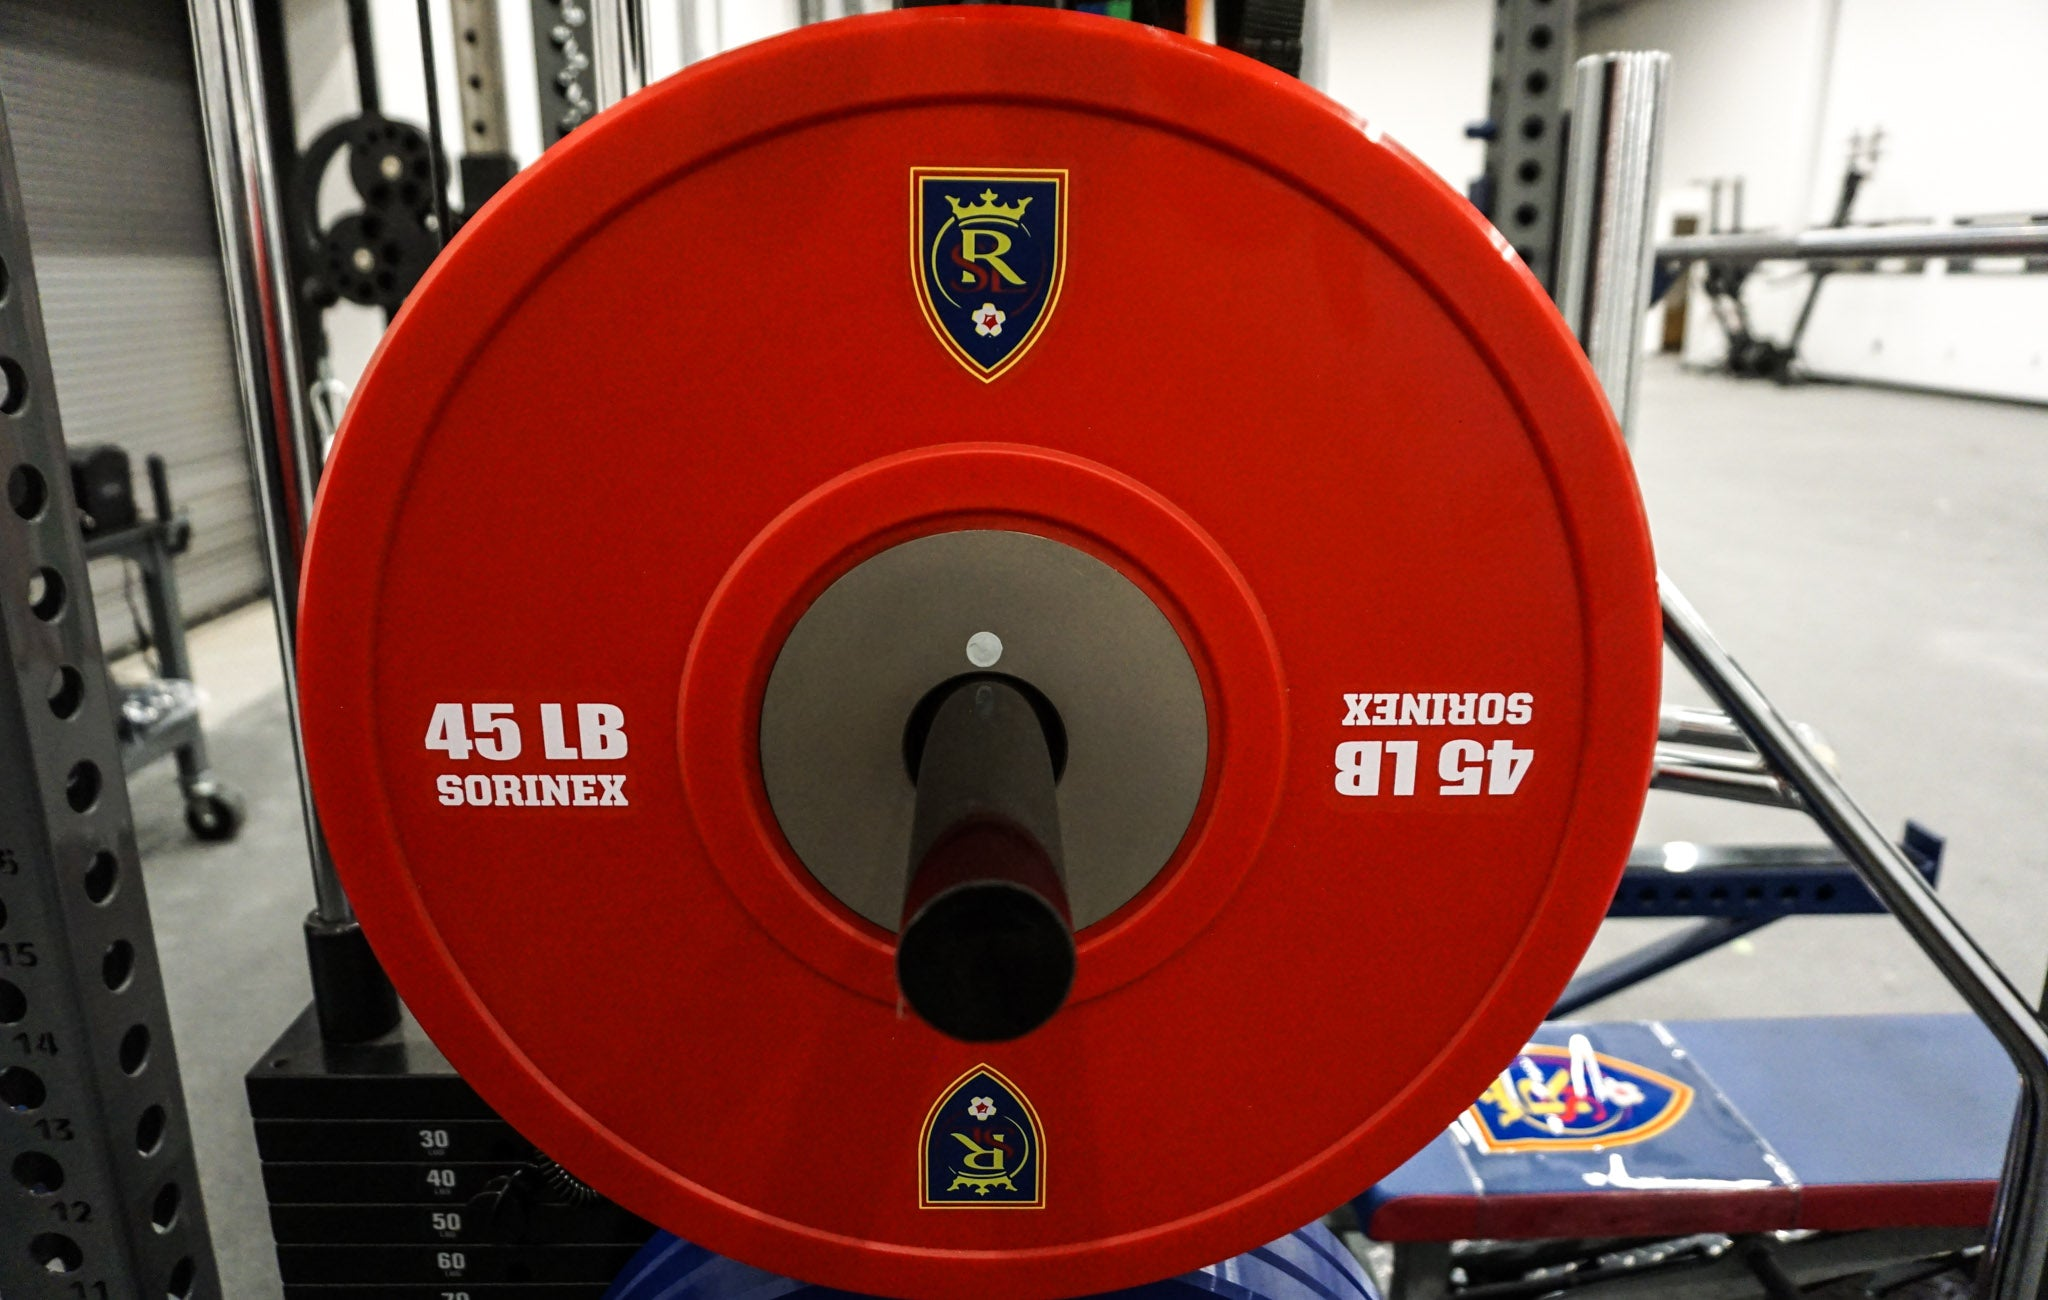 Real Salt Lake sorinex strength training facilities